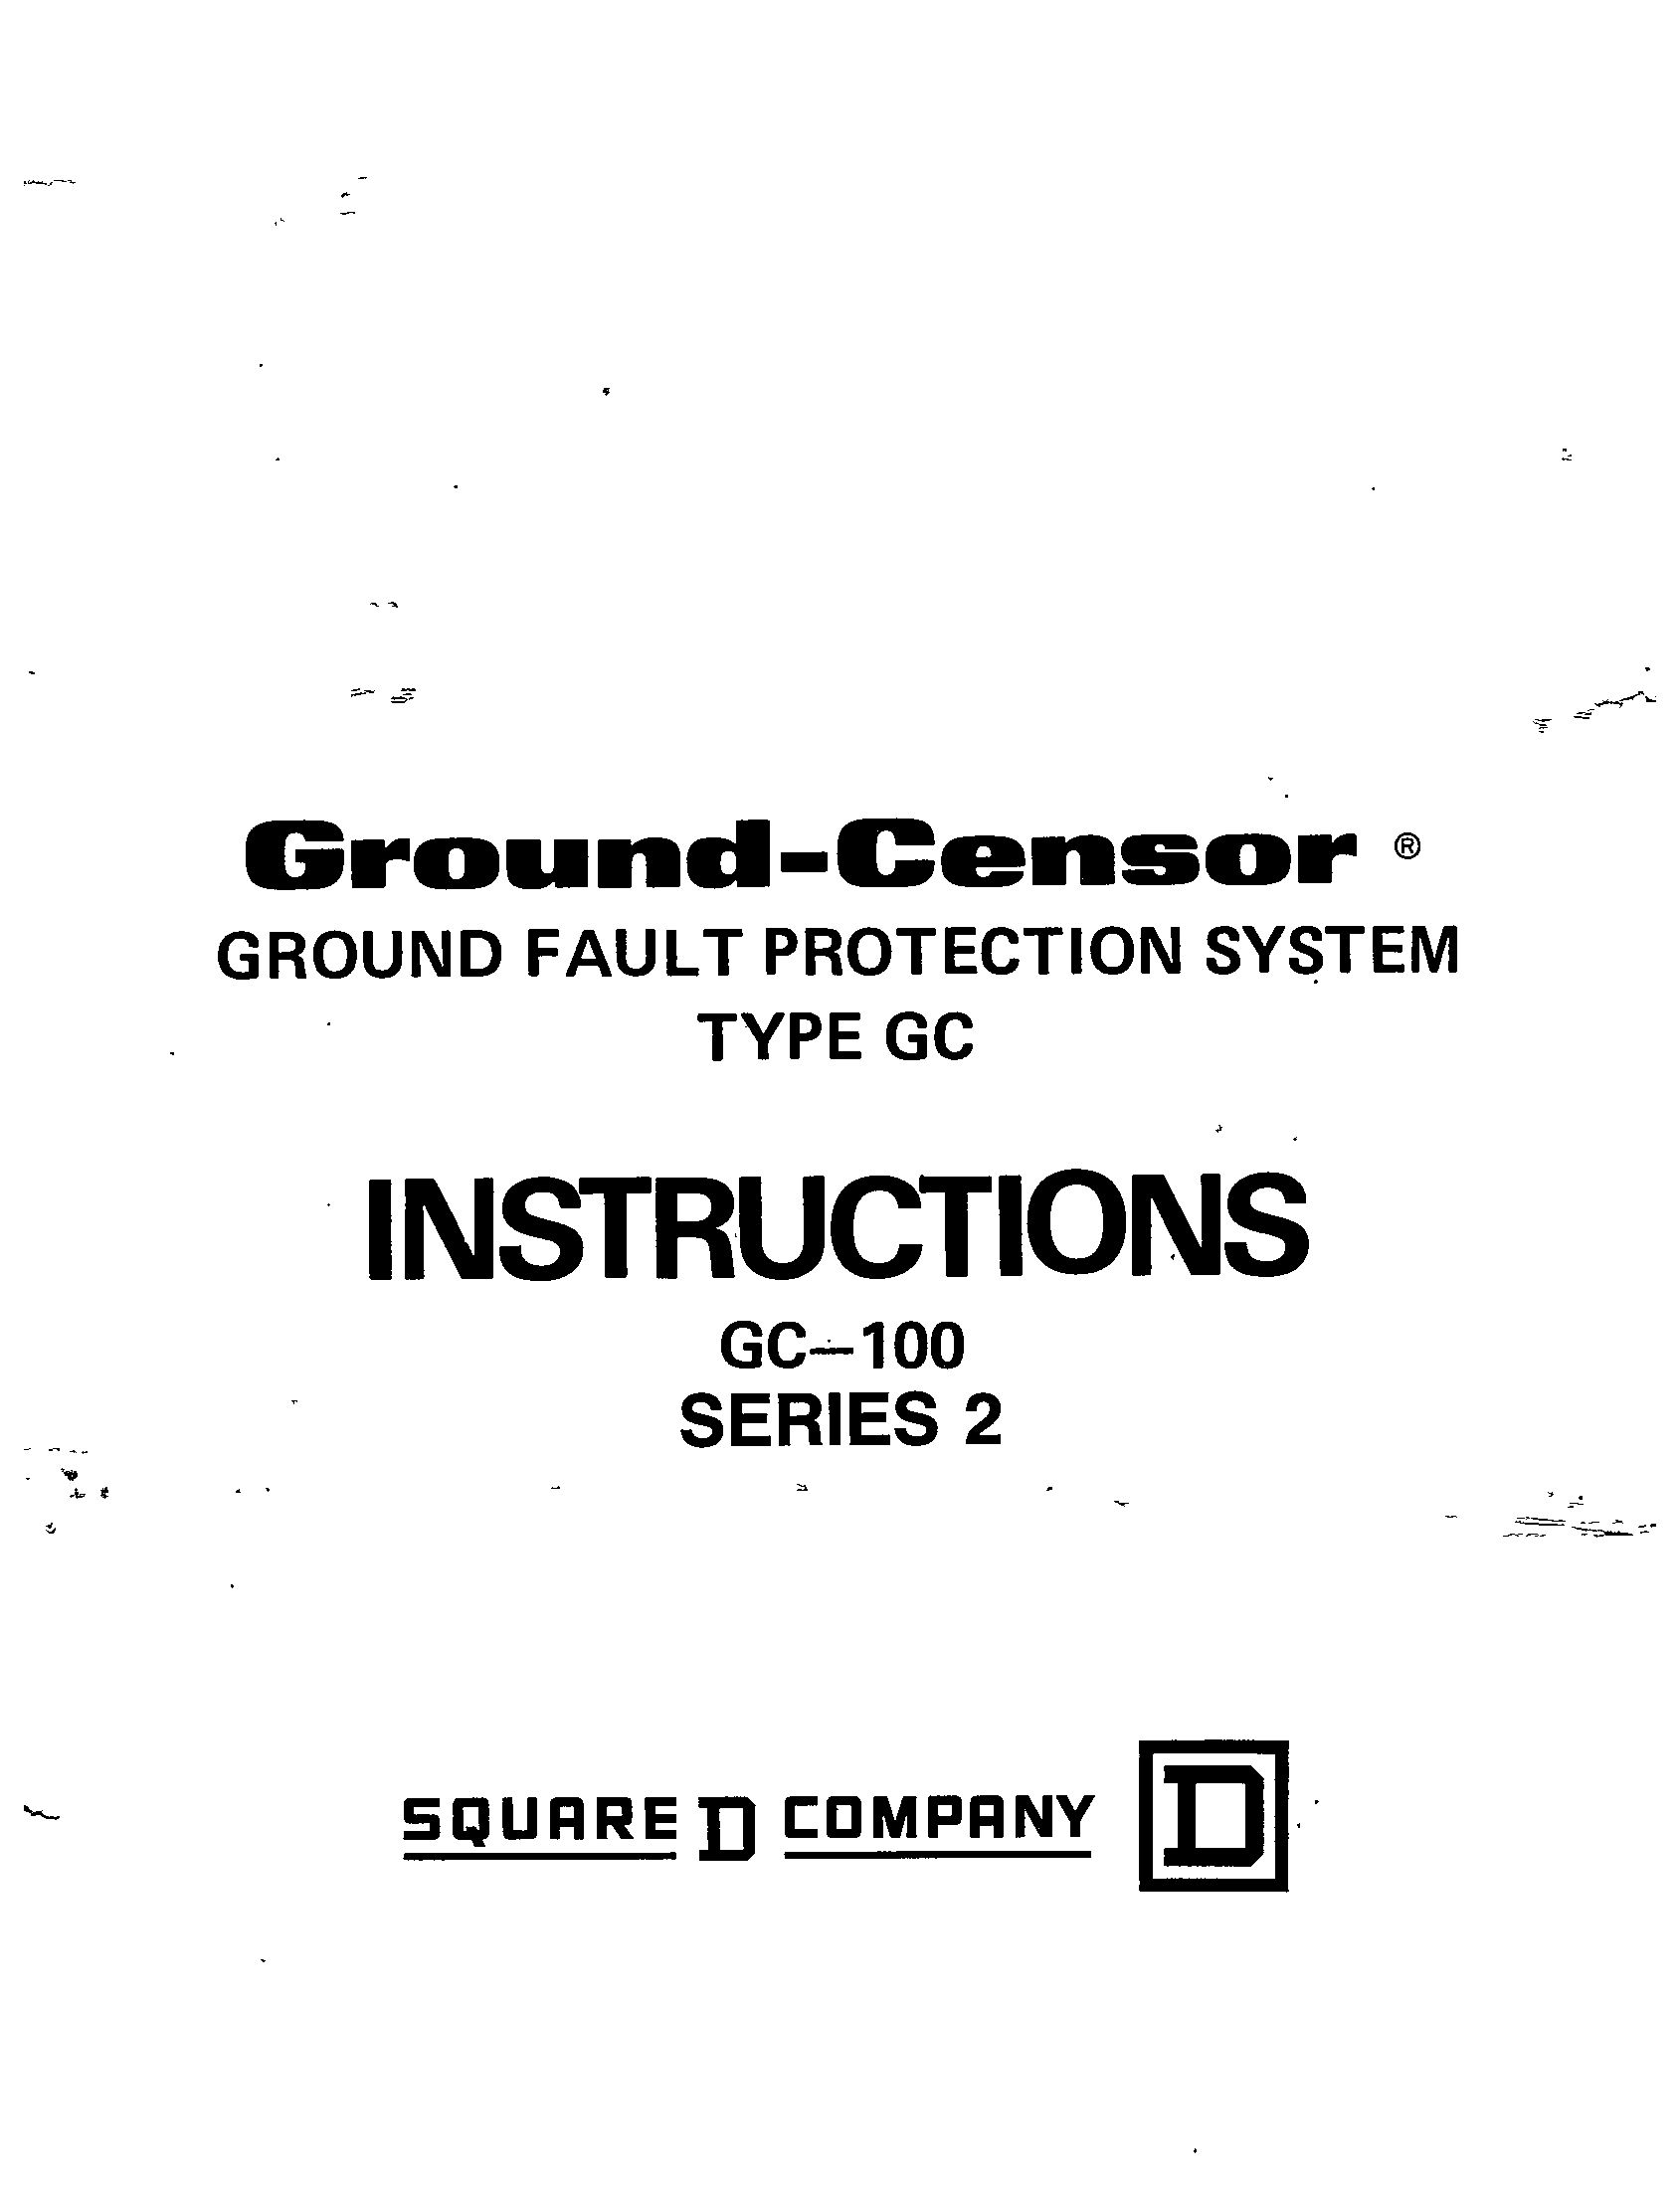 GROUND-CENSOR GROUND FAULT PROTECTION SYSTEM TYPE GC-100